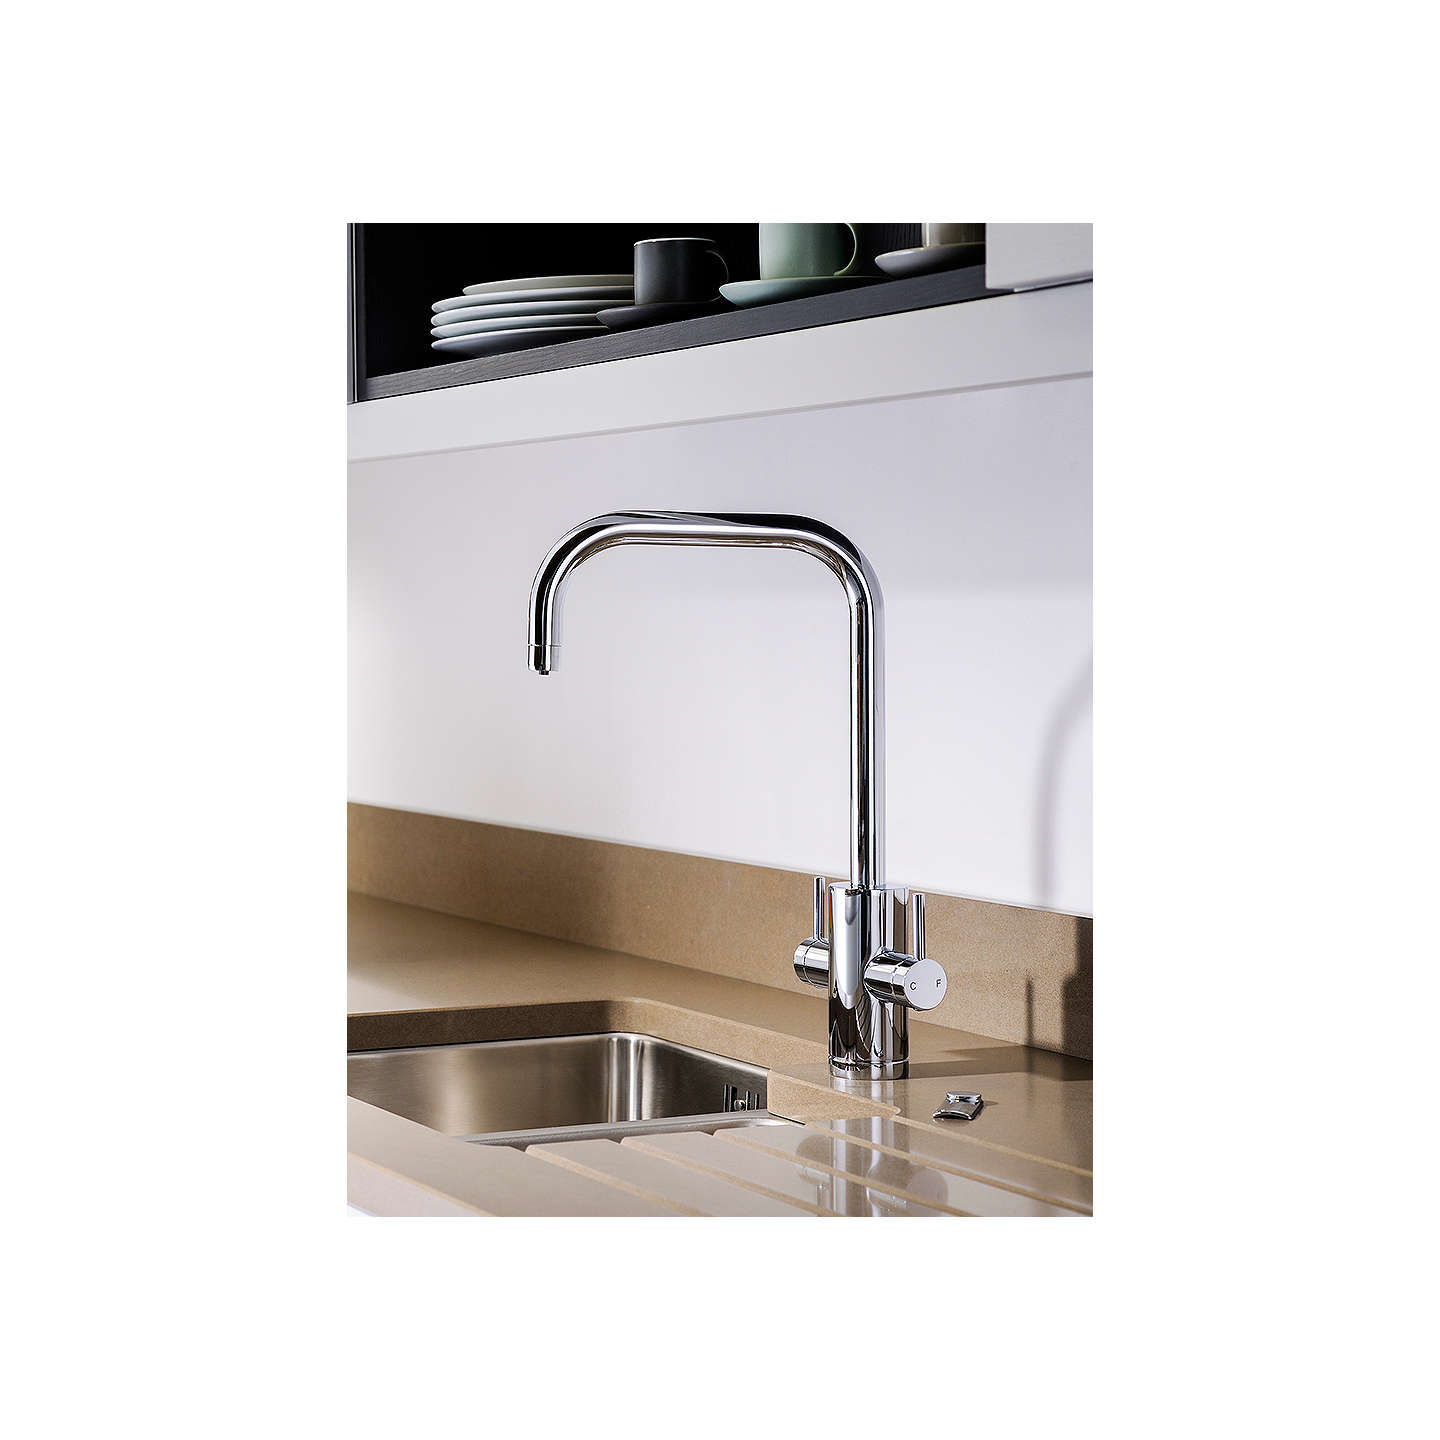 Abode Pronteau 2 Lever 4-in-1 Hot Water Filter Kitchen Mixer Tap ...